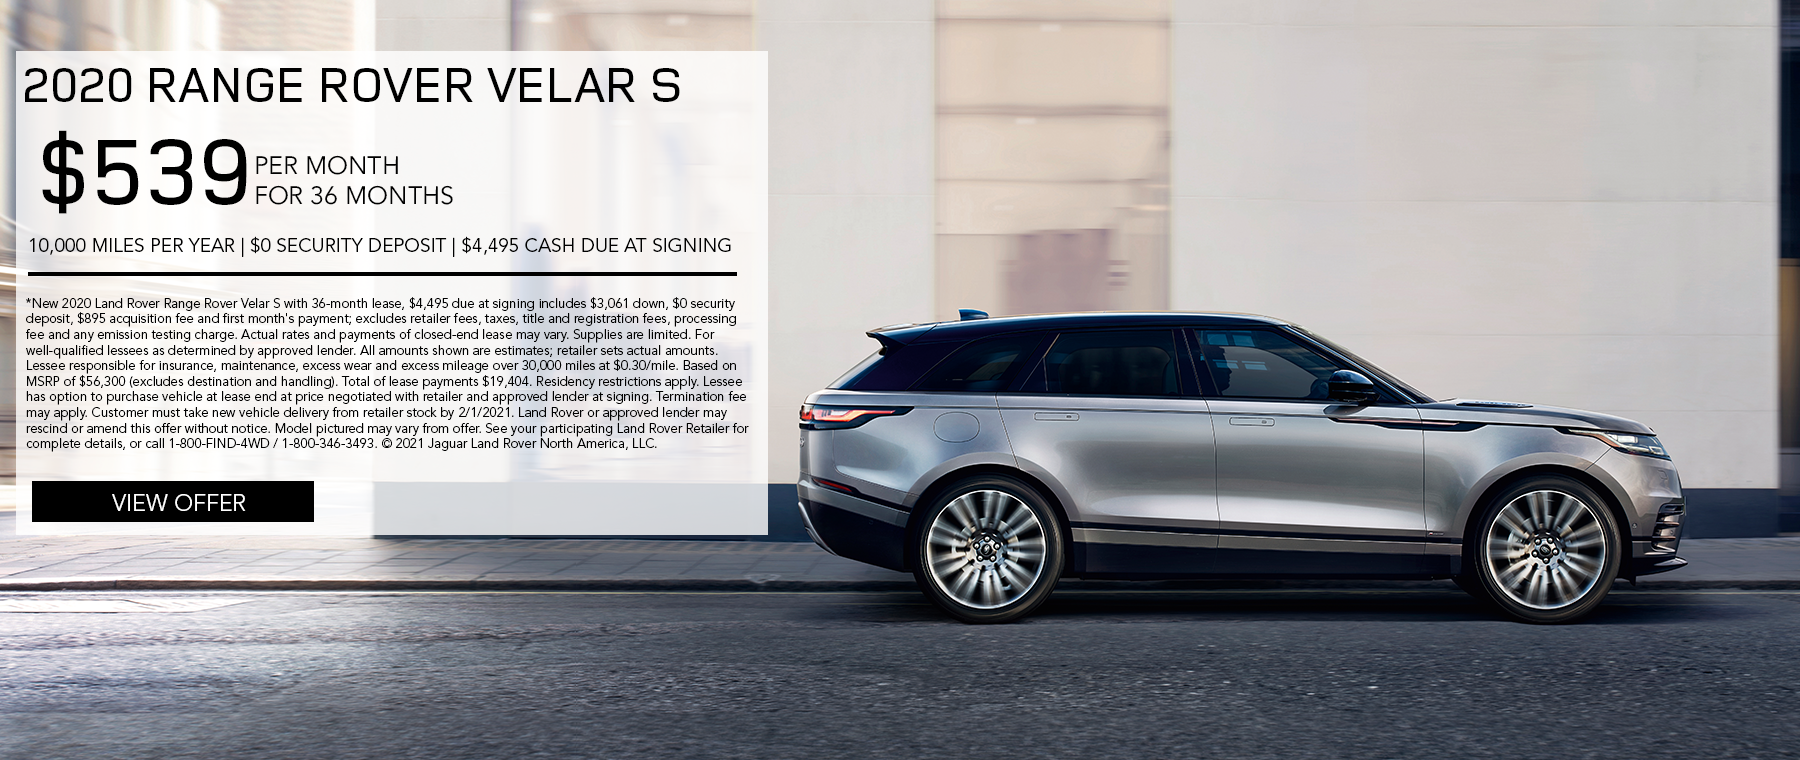 2020 RANGE ROVER VELAR S. $539 PER MONTH. 36 MONTH LEASE TERM. $4,495 CASH DUE AT SIGNING. $0 SECURITY DEPOSIT. 10,000 MILES PER YEAR. EXCLUDES RETAILER FEES, TAXES, TITLE AND REGISTRATION FEES, PROCESSING FEE AND ANY EMISSION TESTING CHARGE. ENDS 2/1/2021.